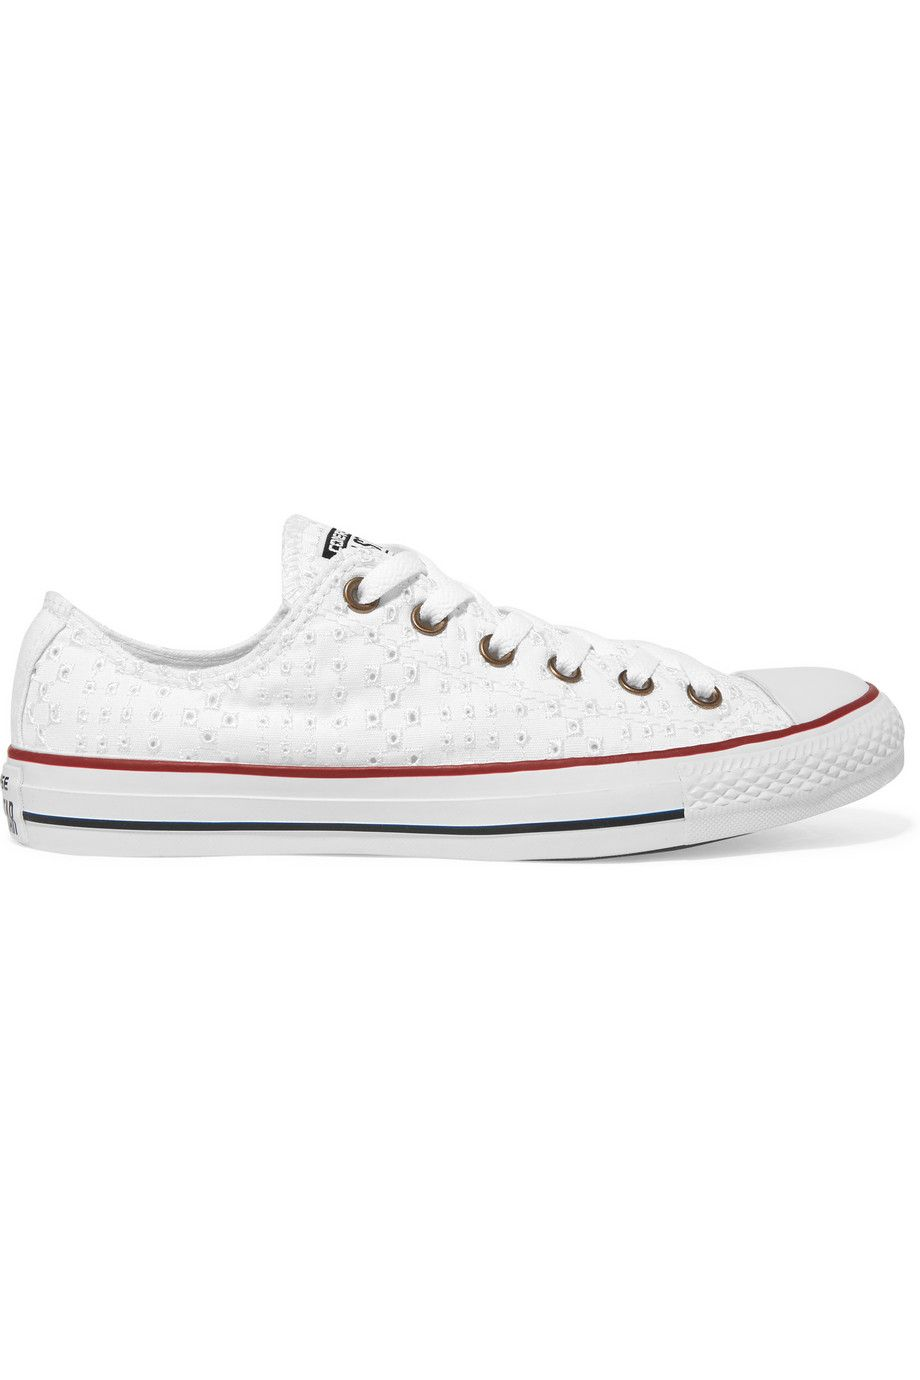 converse femme broderie anglaise